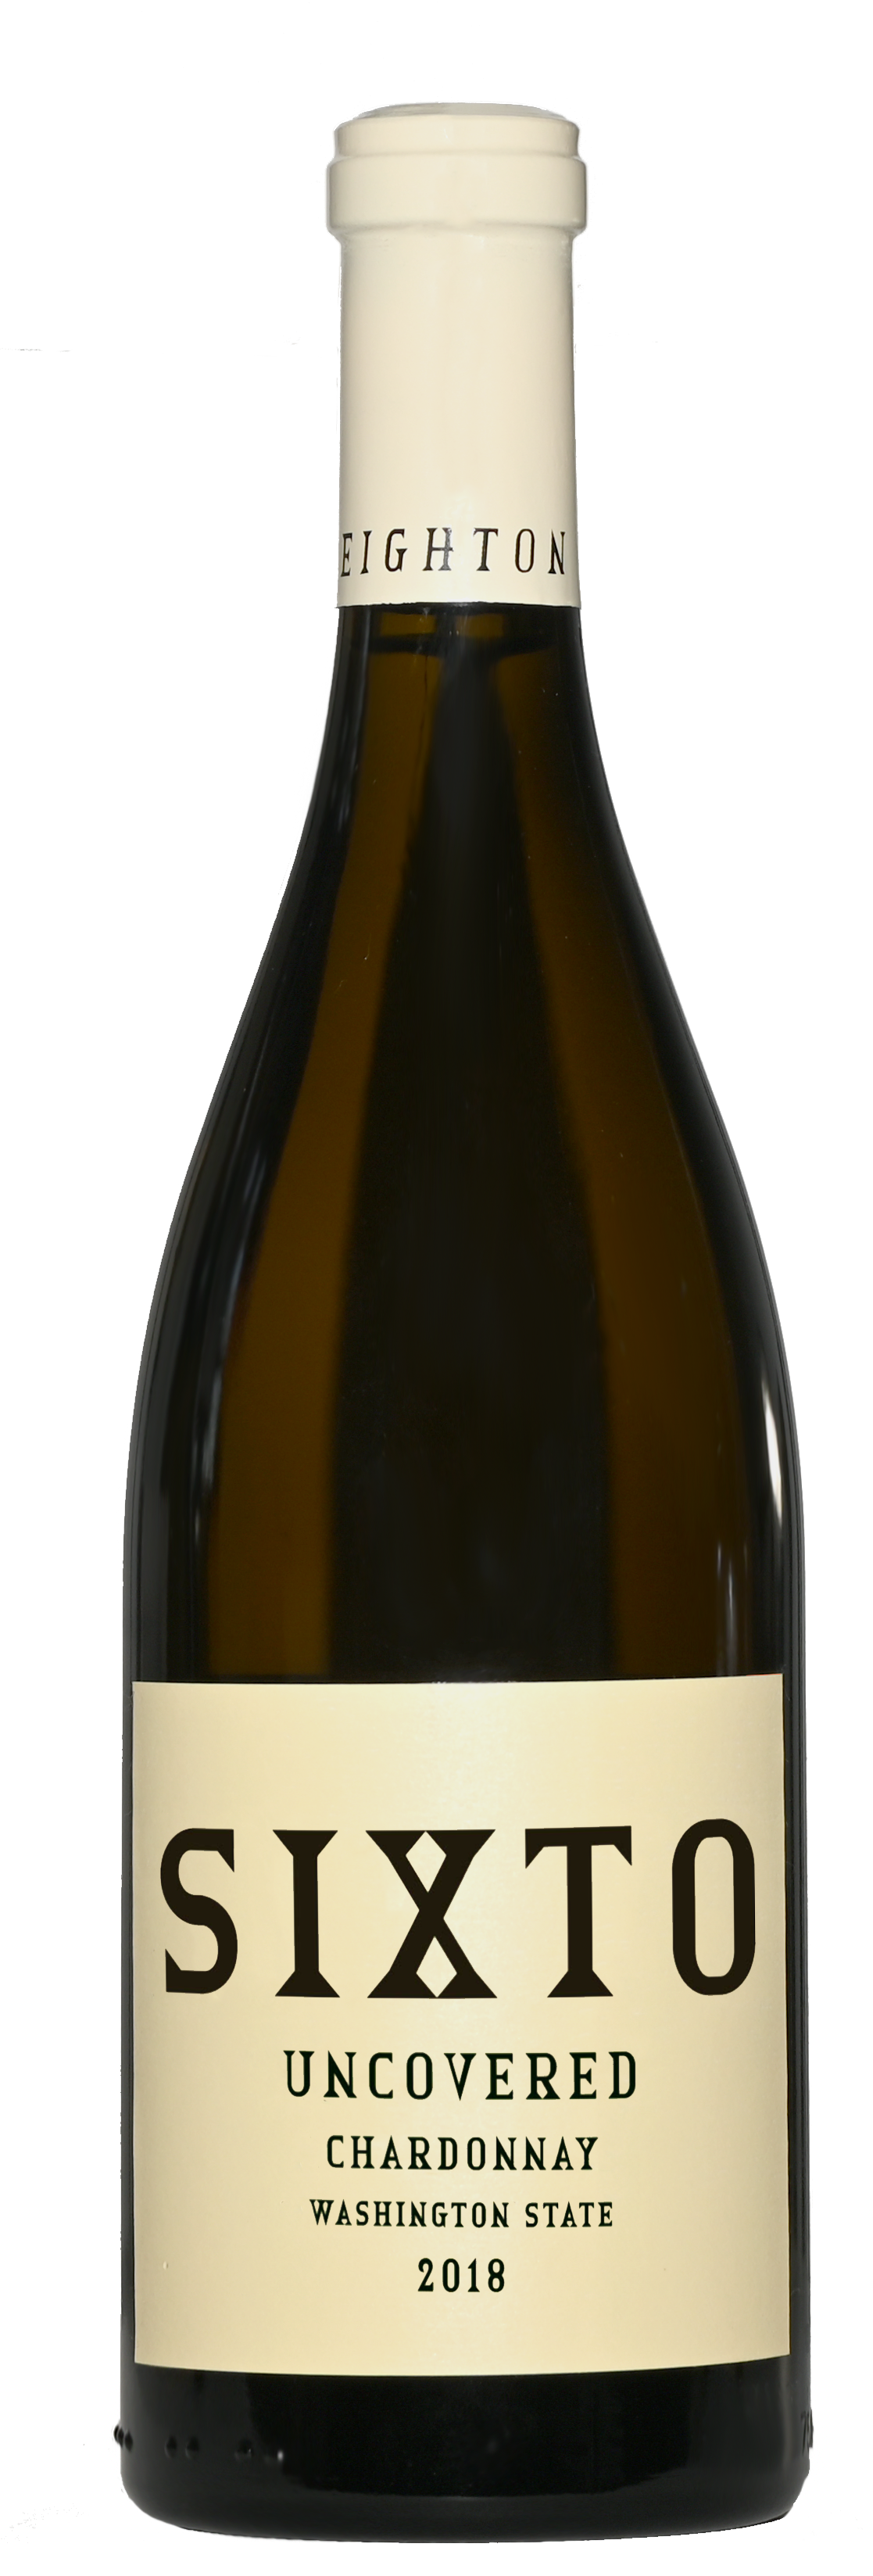 A classy brown bottle of wine with white wine inside. A beige capsule on top and beige label with black text on front.